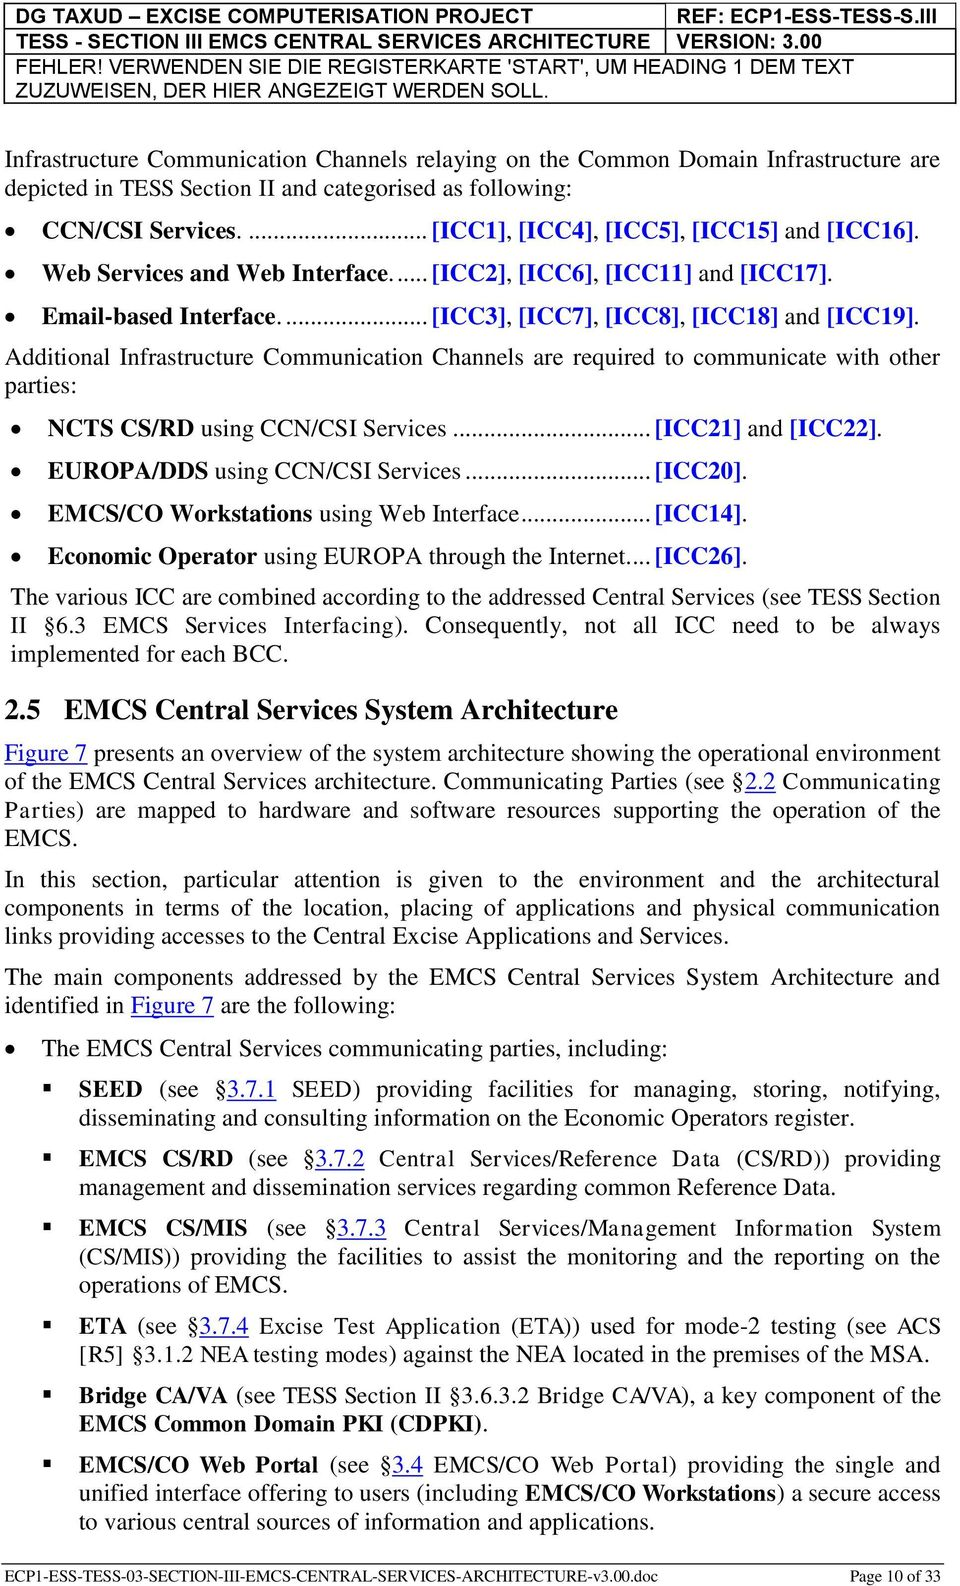 Additional Infrastructure Communication Channels are required to communicate with other parties: NCTS CS/RD using CCN/CSI Services... [ICC21] and [ICC22]. EUROPA/DDS using CCN/CSI Services... [ICC20].